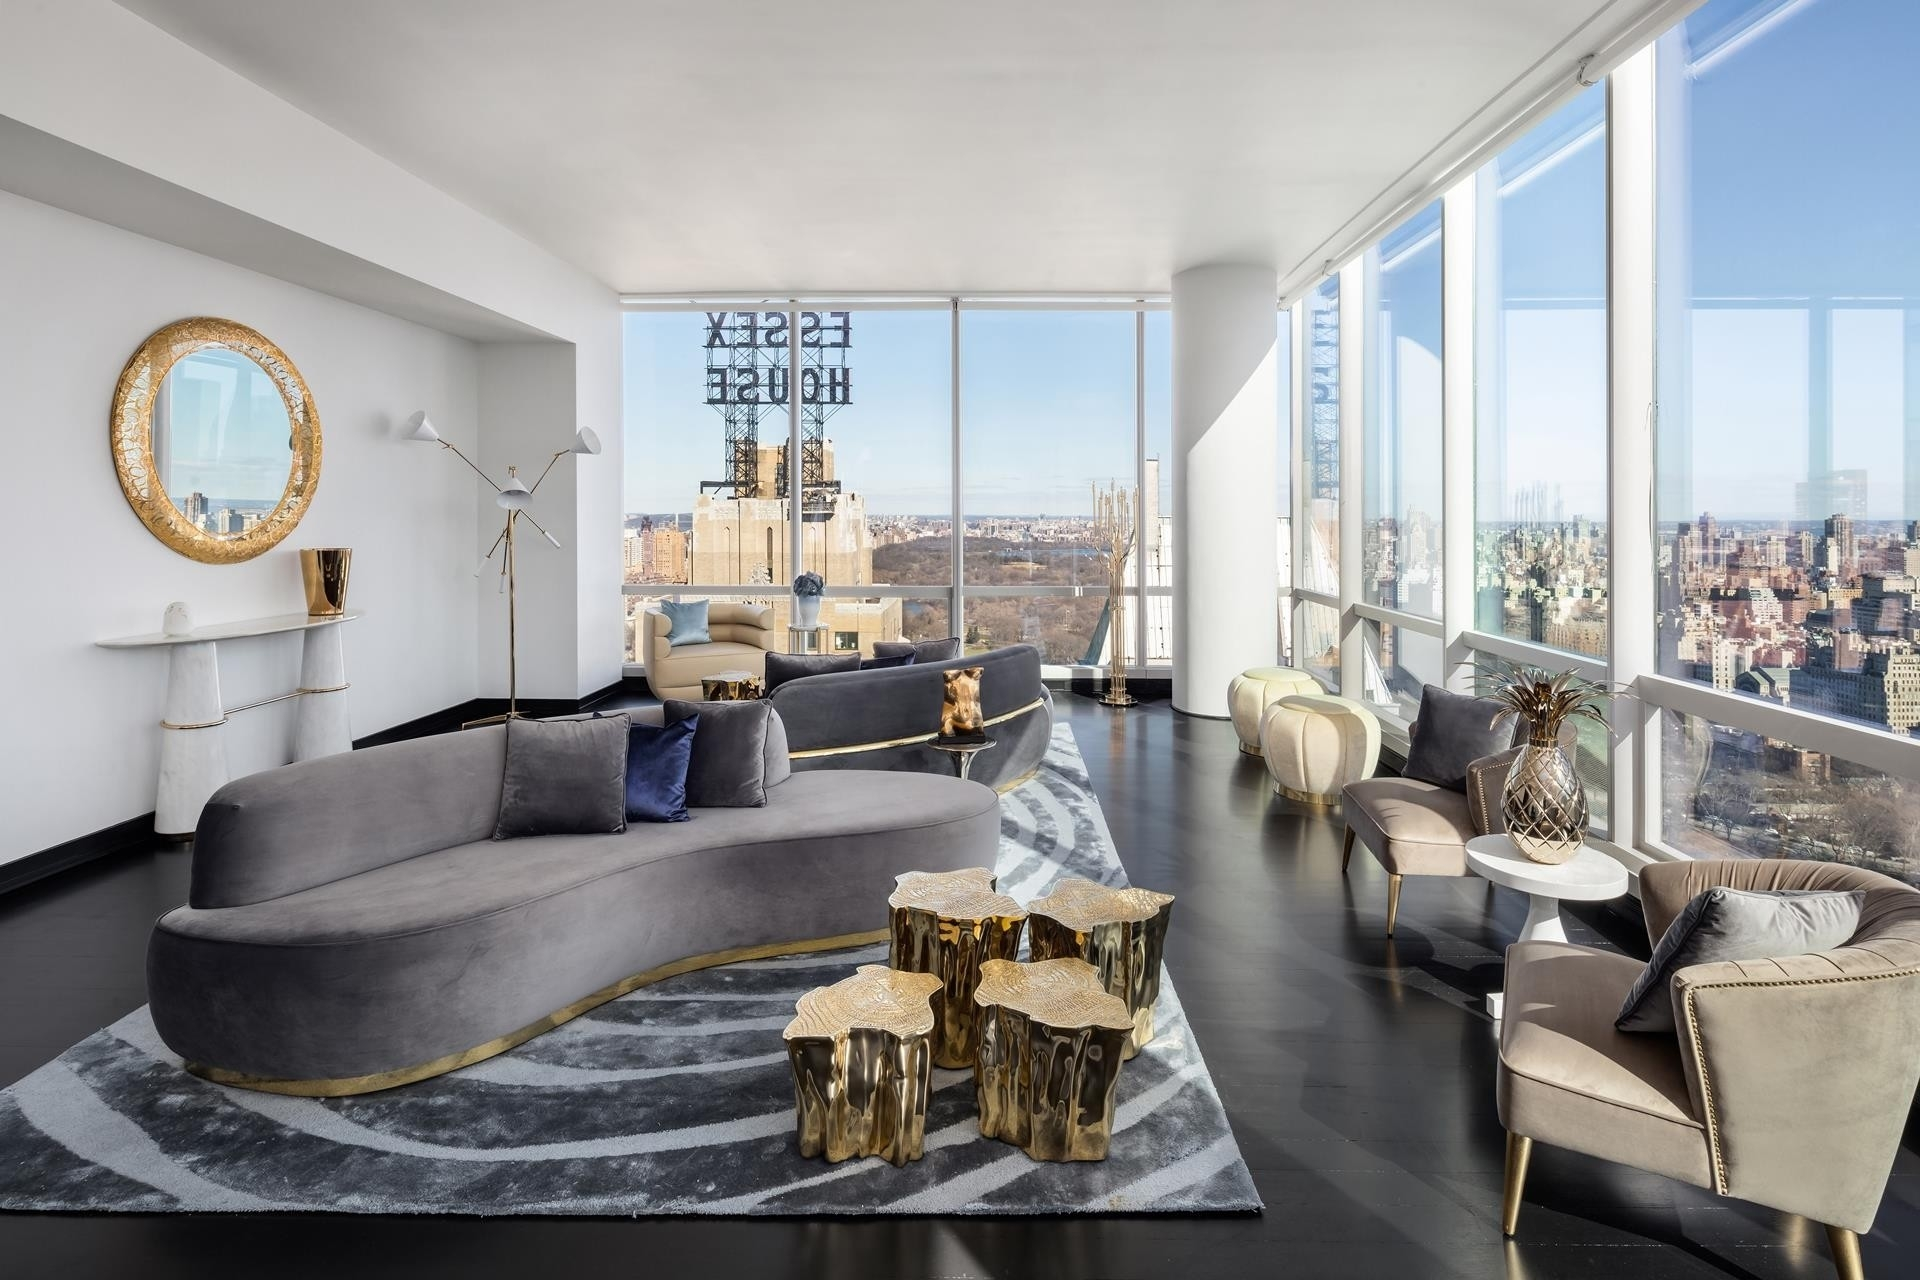 2. Condominiums for Sale at One57, 157 West 57th St, 45C Midtown West, New York, NY 10019